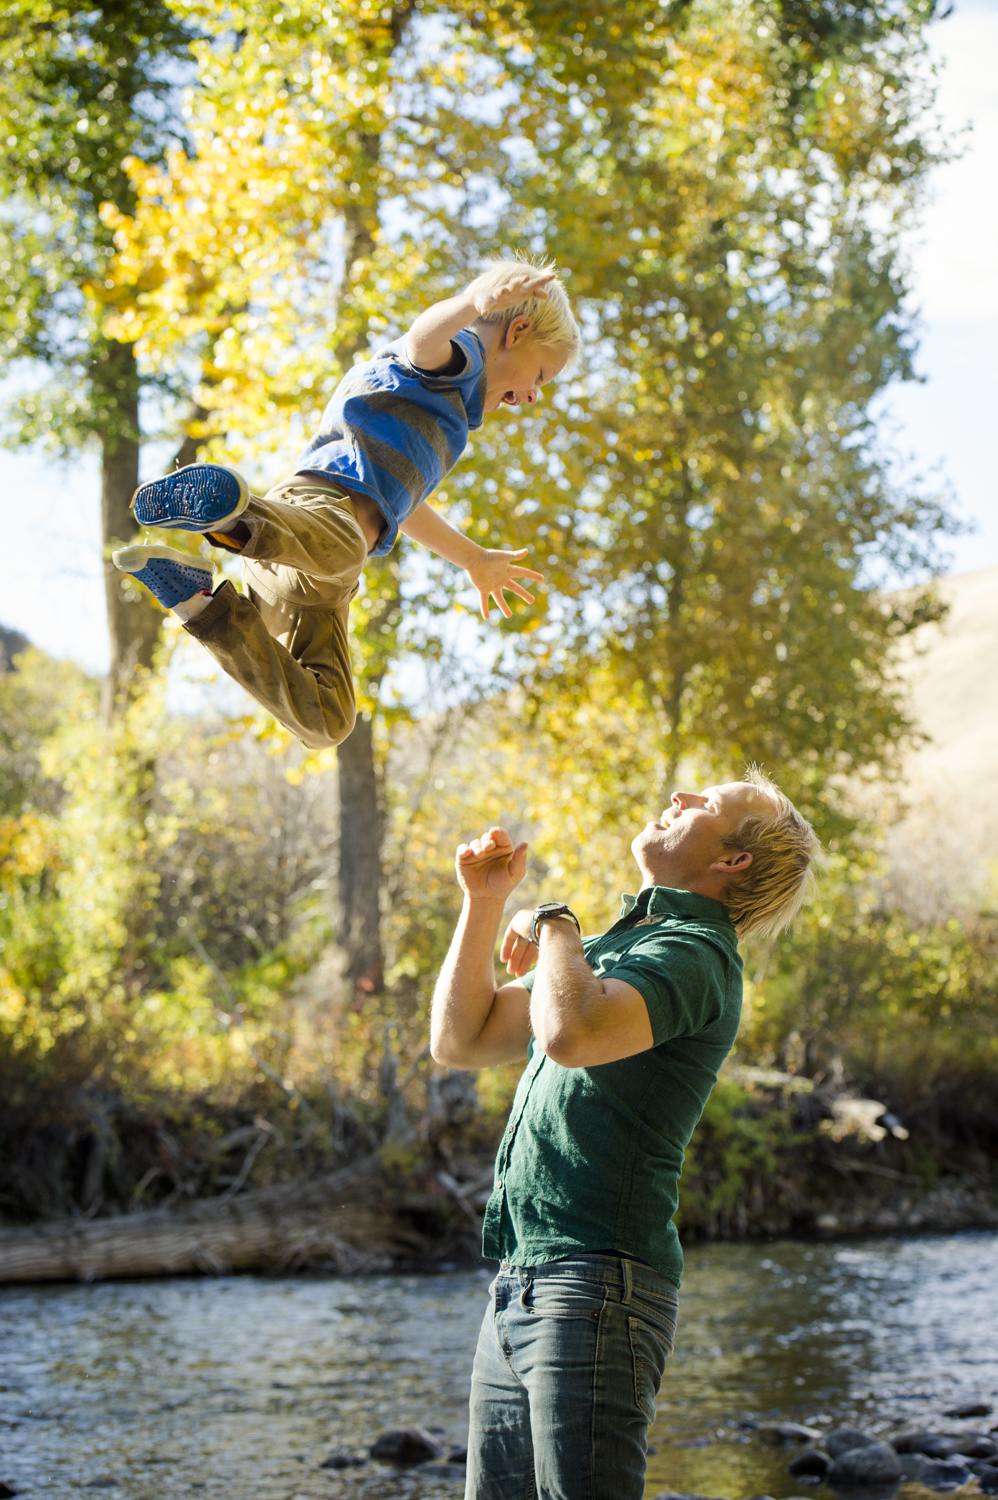 fall_lifestyle_family_leaves_candid_playing-012.jpg